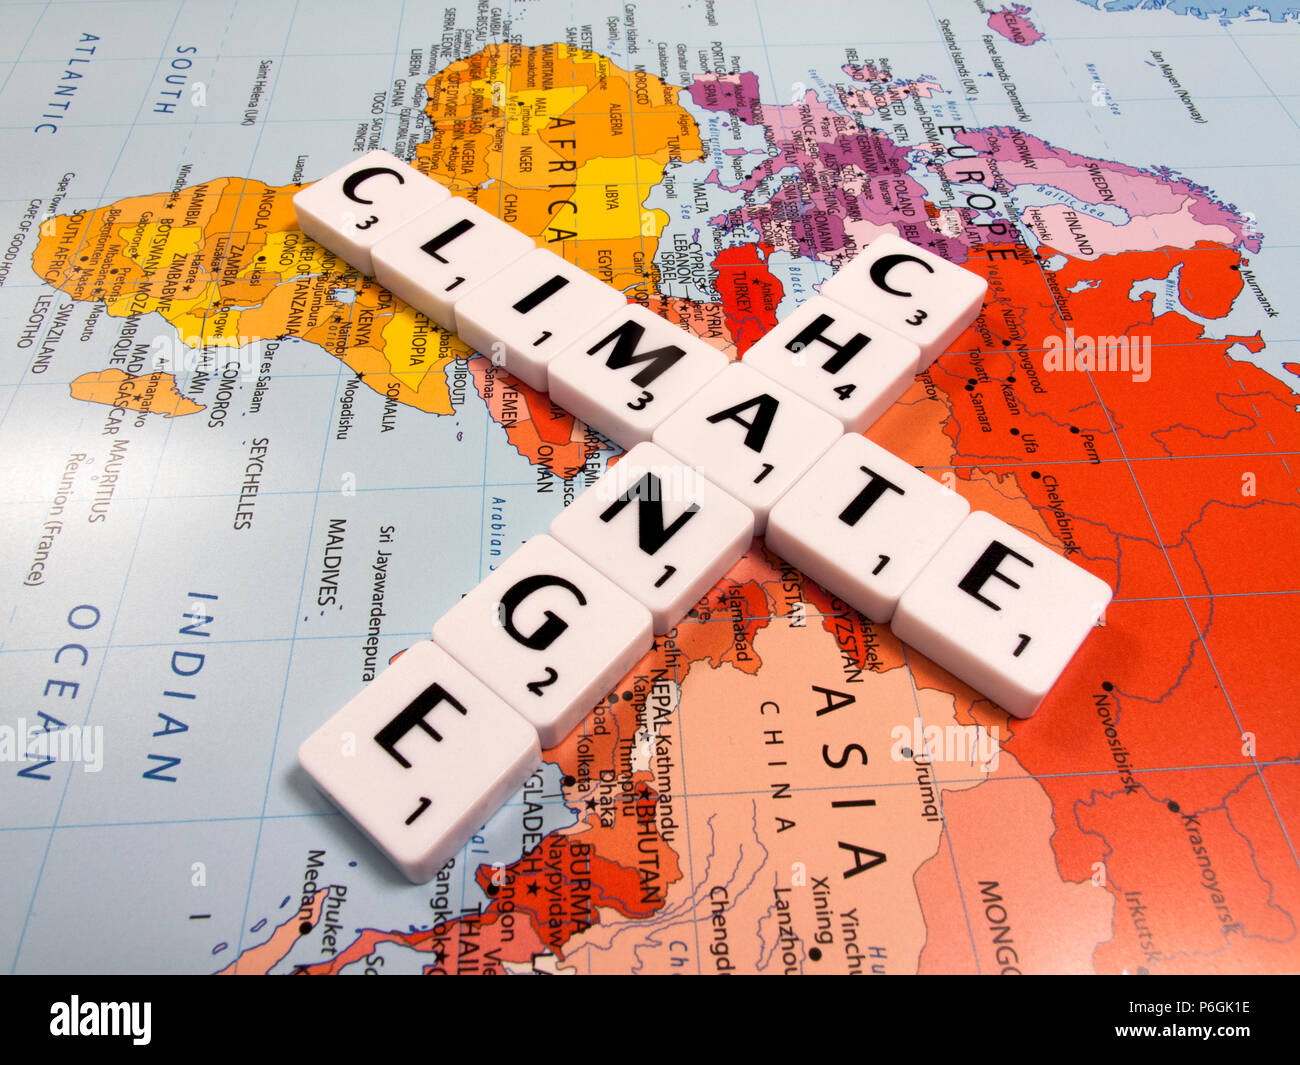 representation of climate change, the average global temperature has